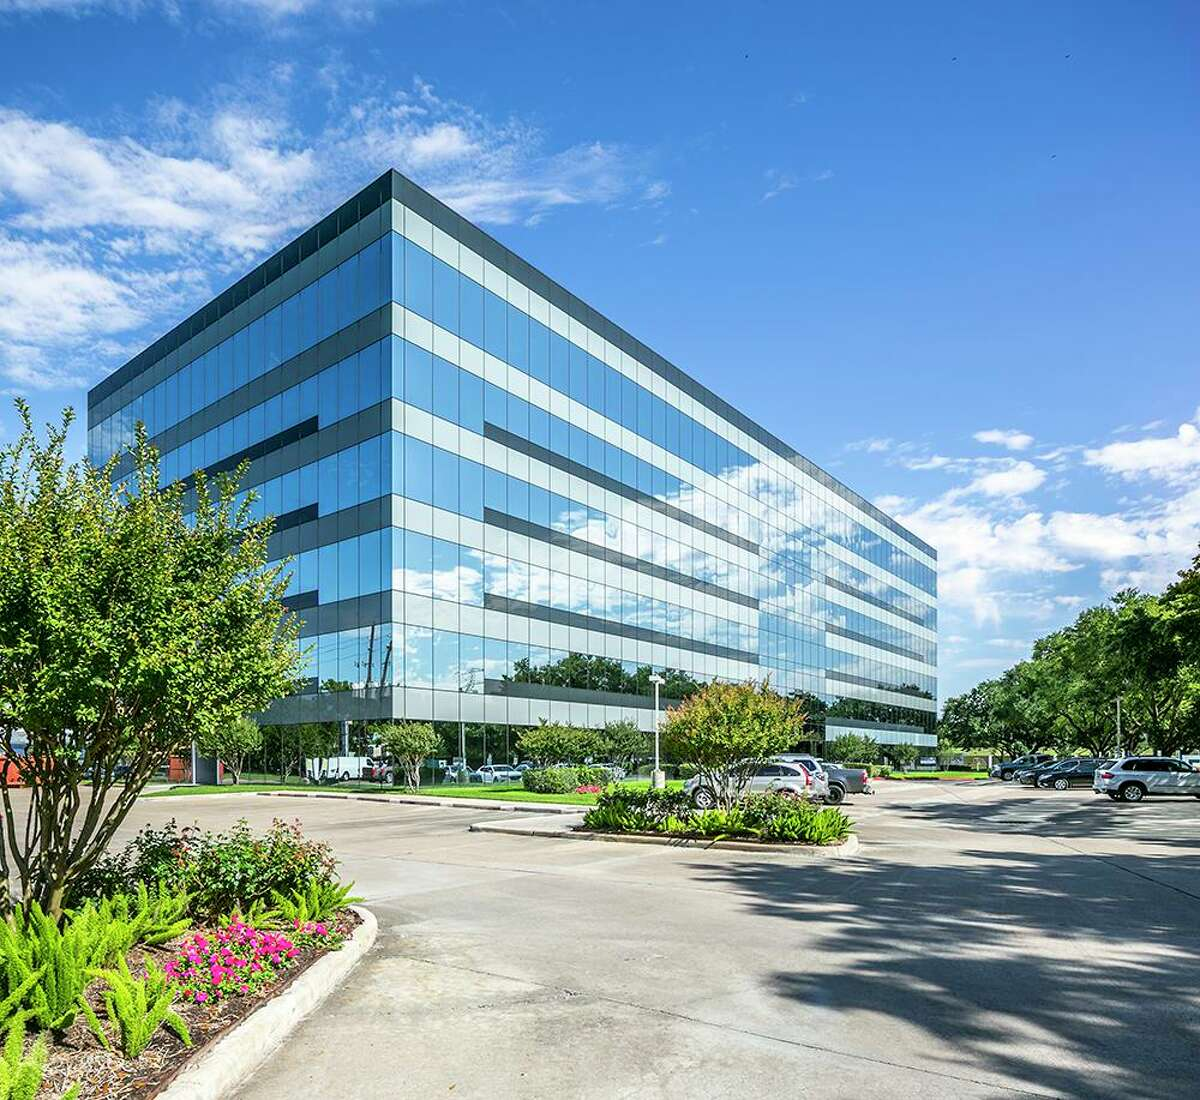 Rycore Capital purchased the 155,407-square-foot 1311 Broadfield Blvd. office building in December. Enventure Global Technology leased 18,069 square feet in the building.